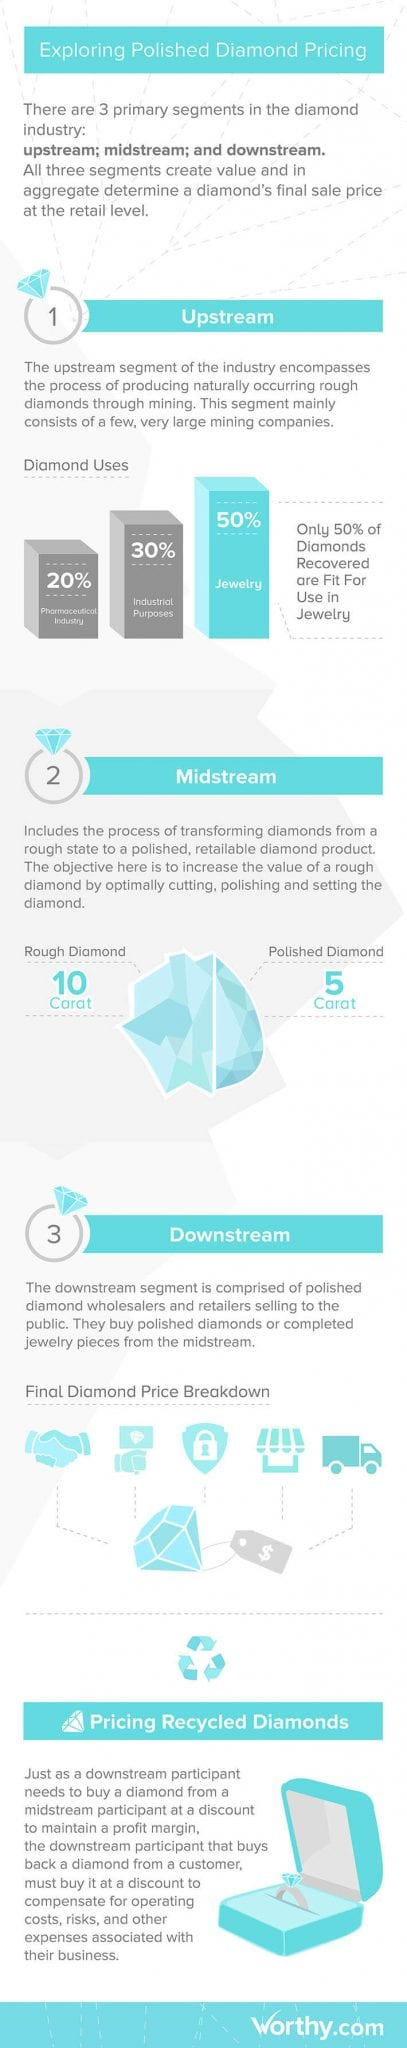 Exploring Diamond Pricing- infographic